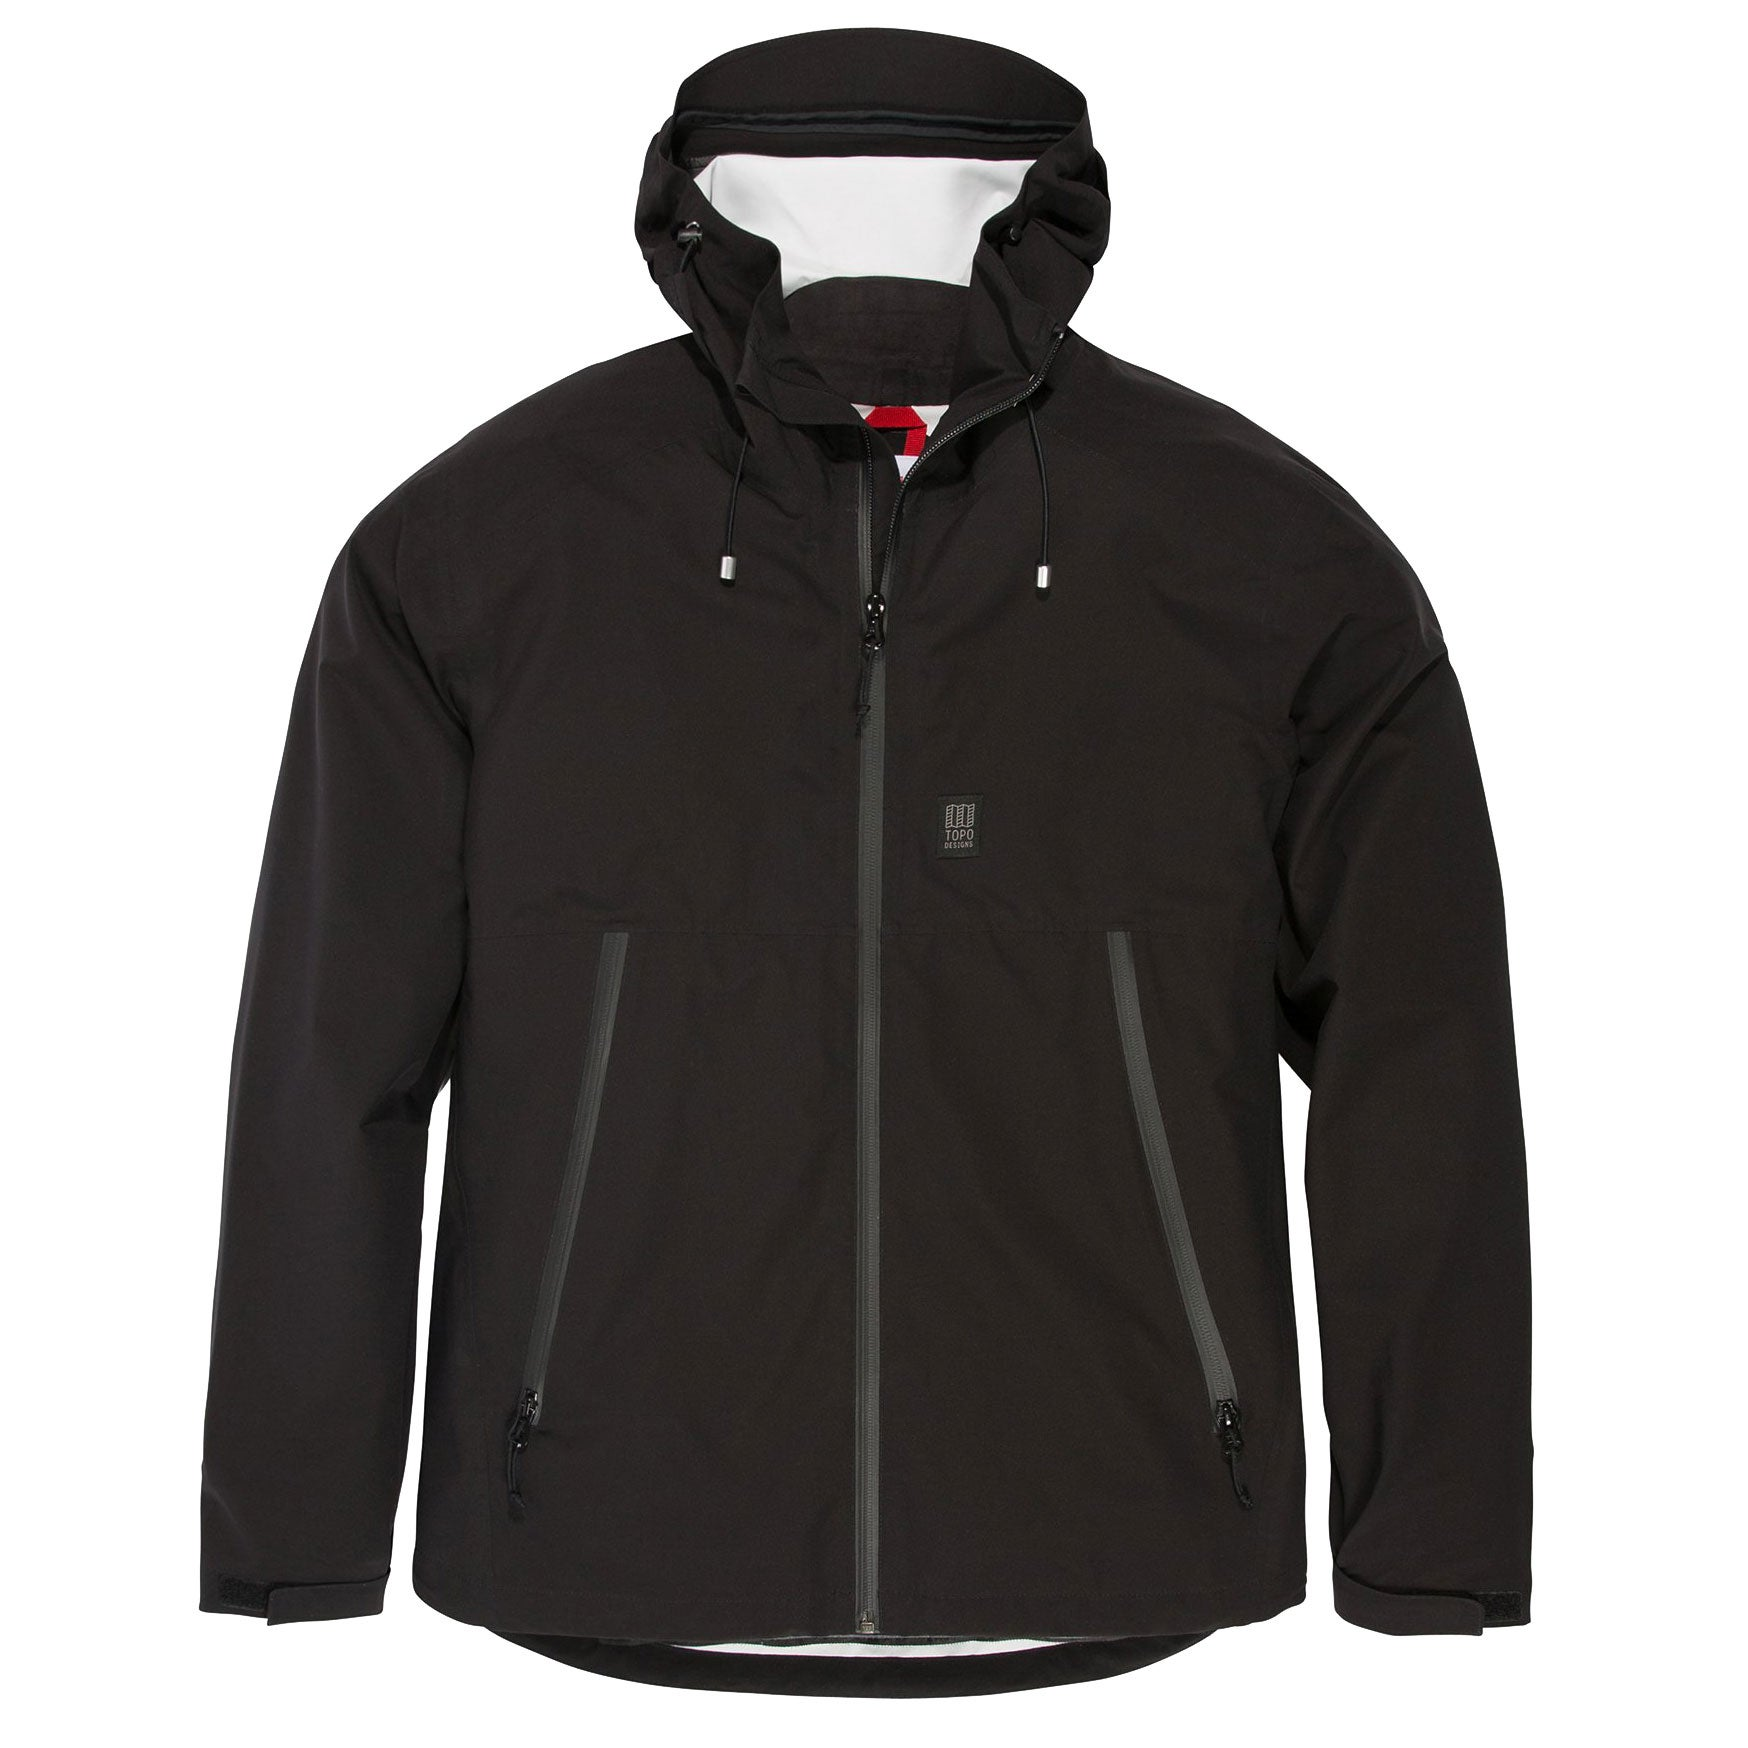 Topo Designs Global Jacket